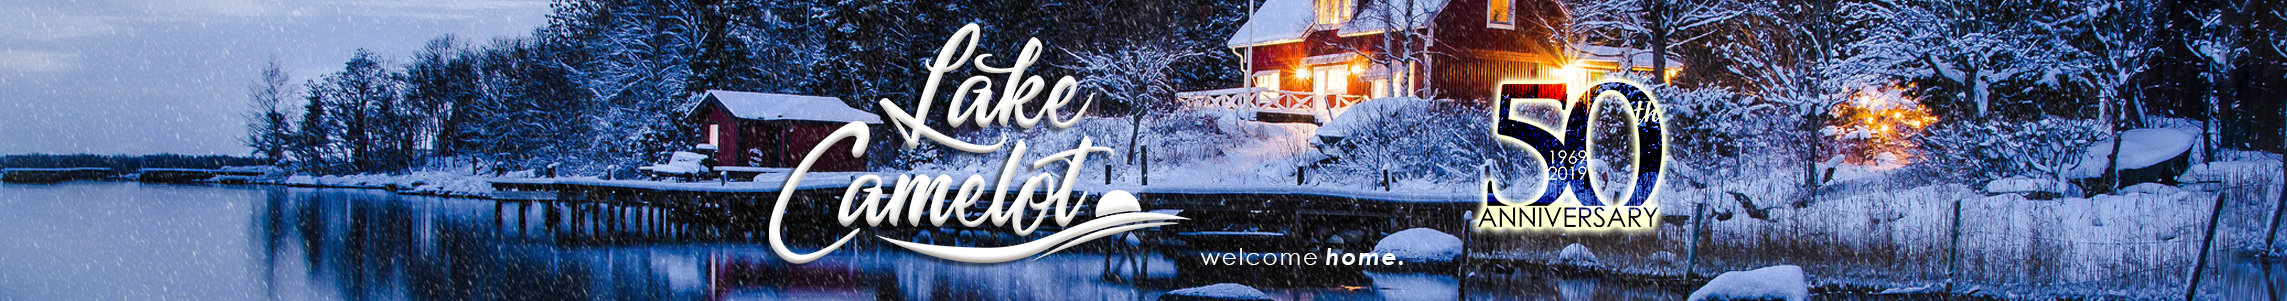 website-header-WINTER.jpg